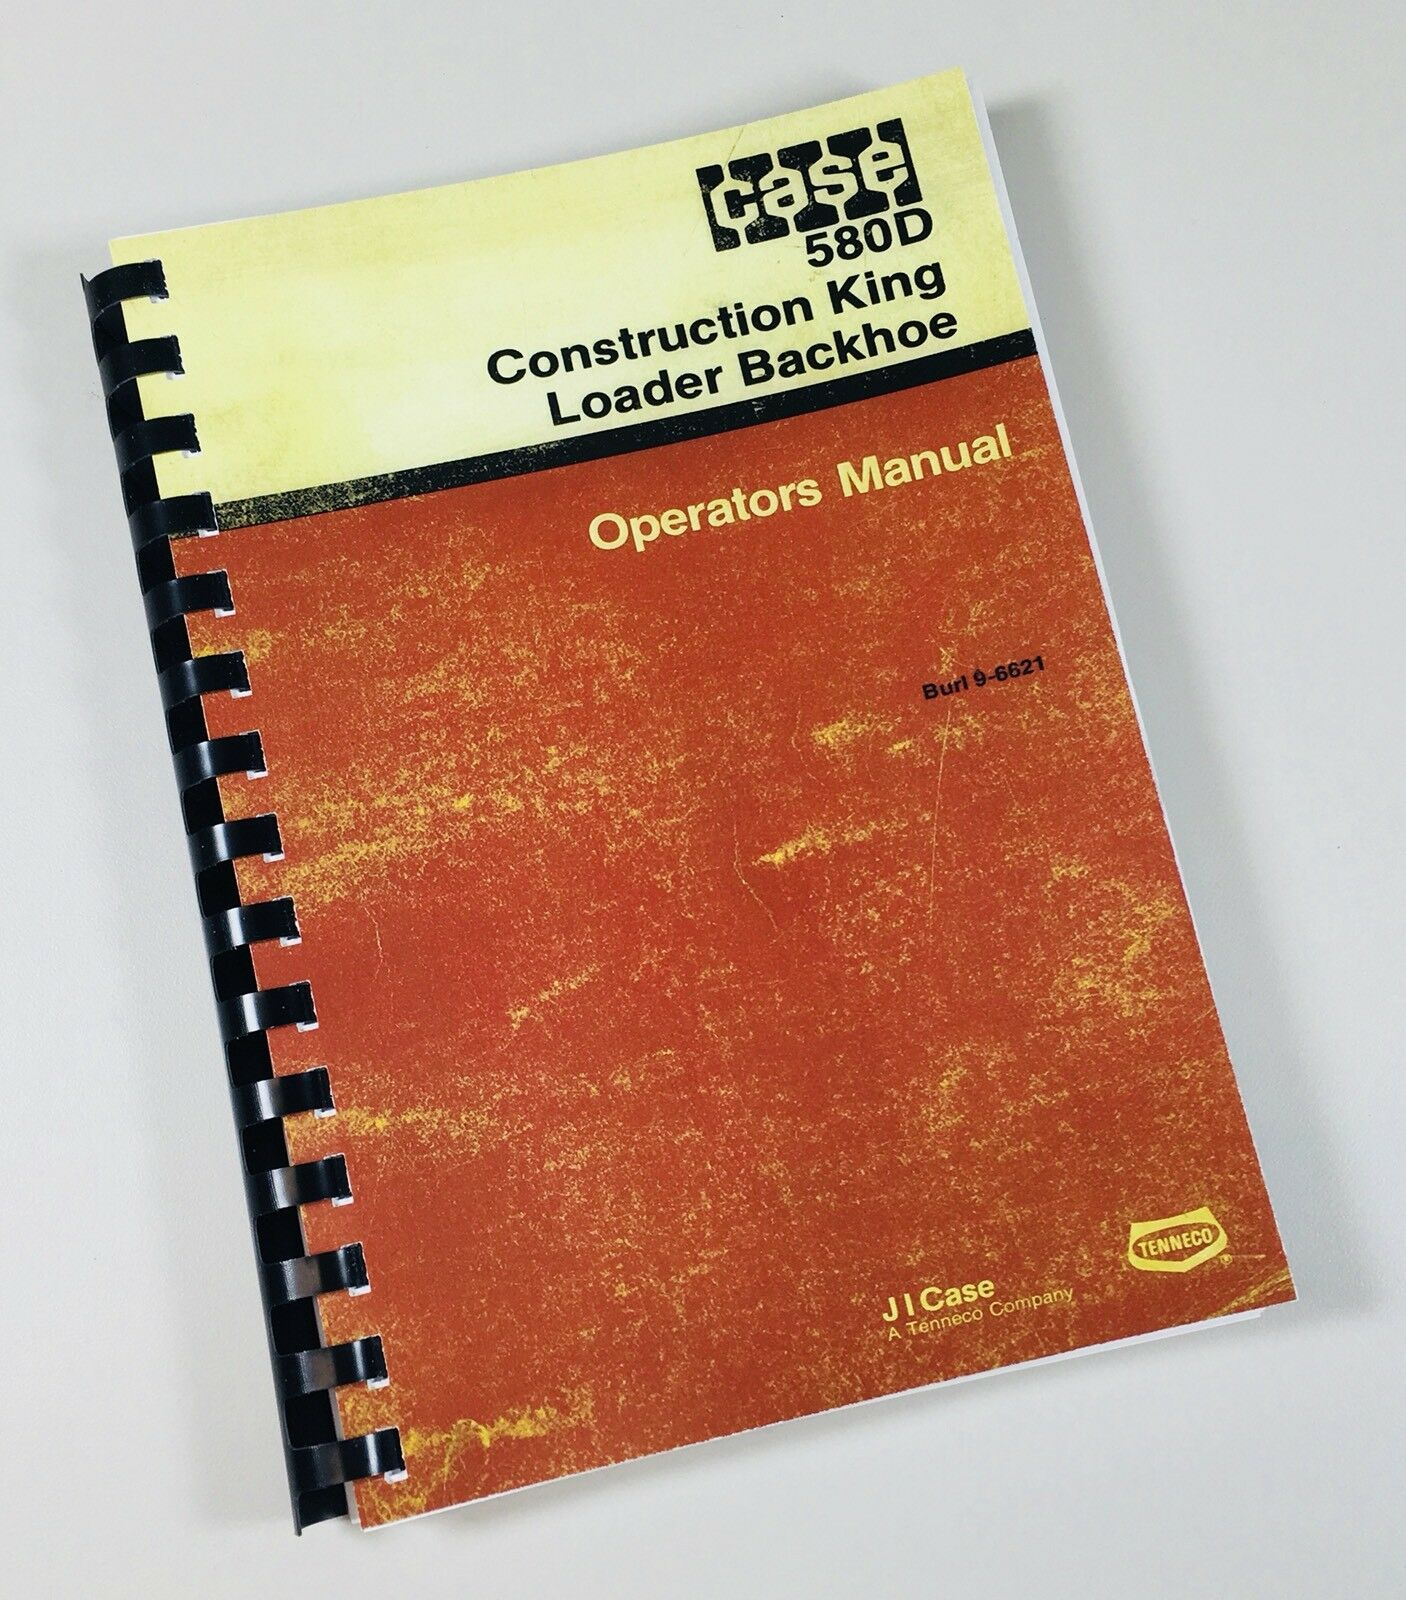 Case 580D Construction King Loader Backhoe Operators Owners Manual Ck 580 D  1 of 7FREE Shipping ...